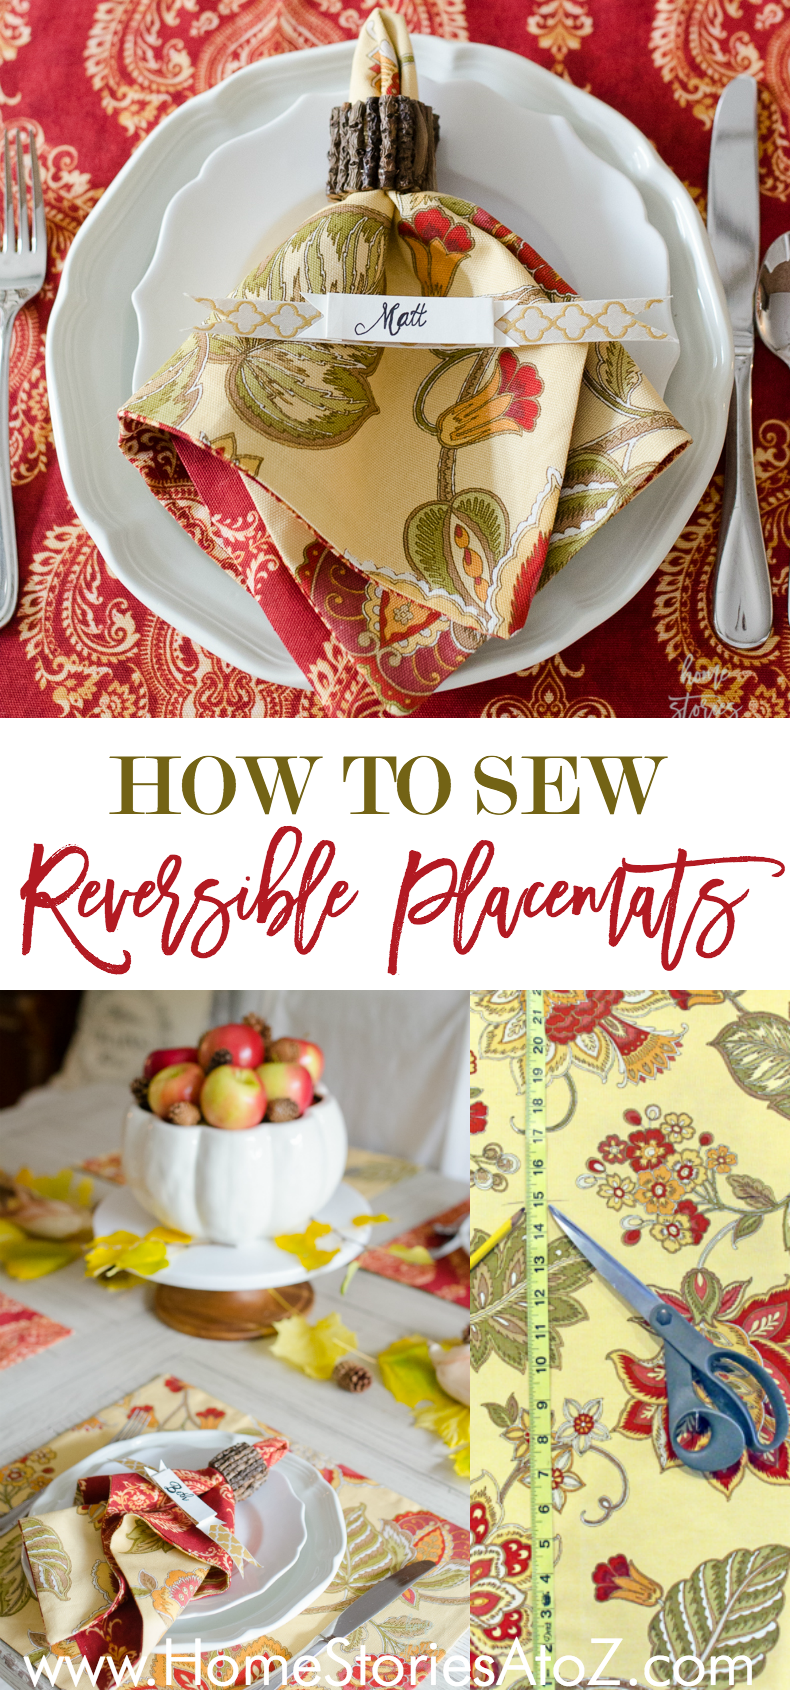 how-to-sew-reversible-placemats-easy-placemat-tutorial